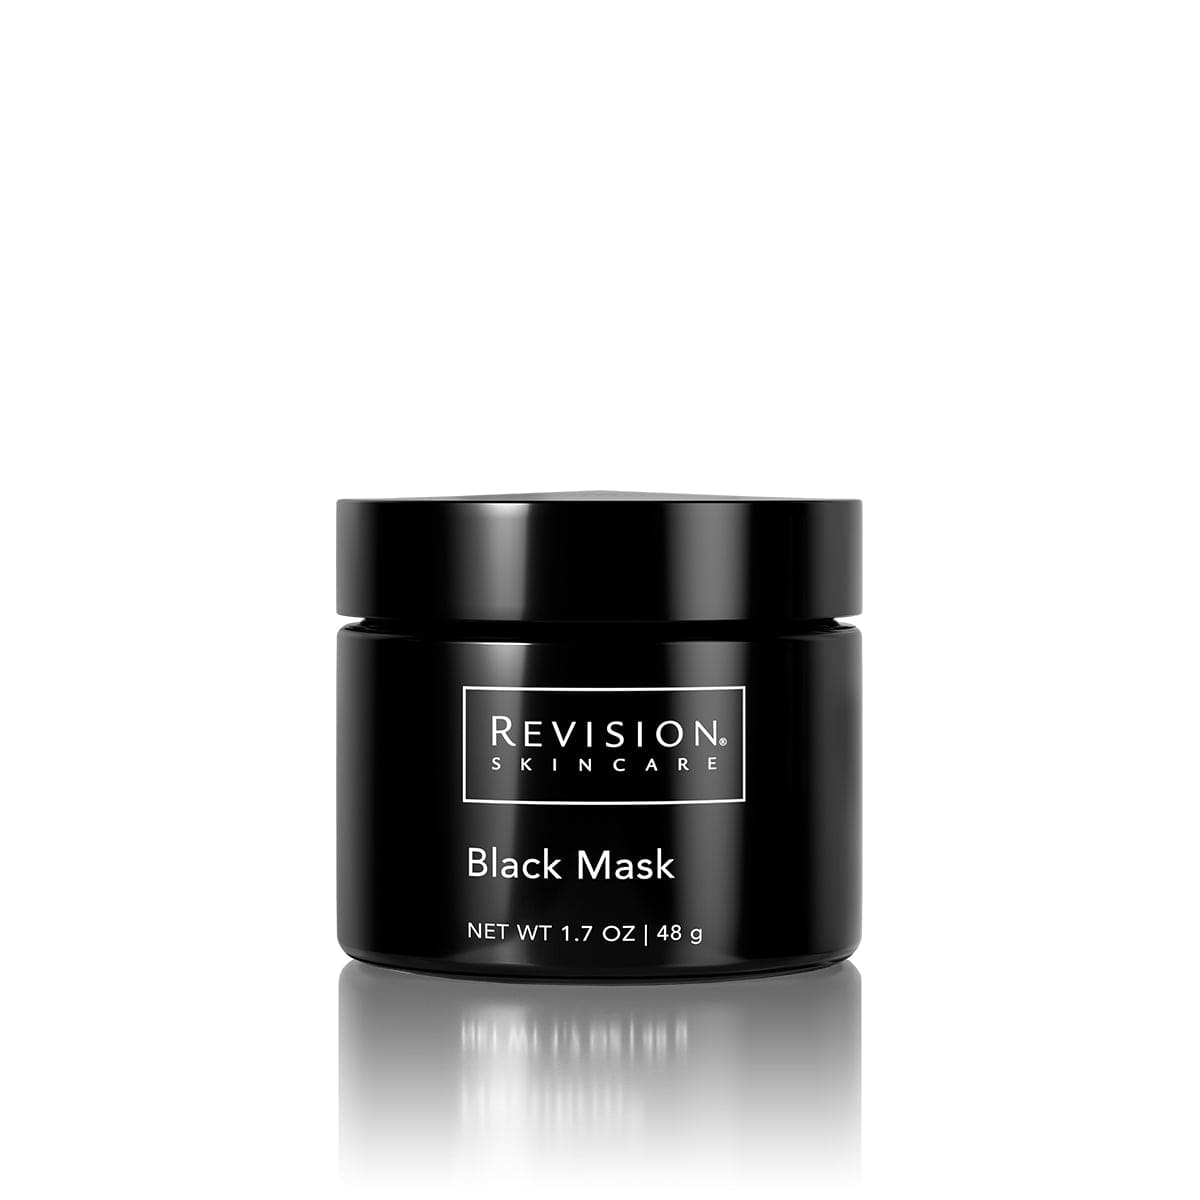 Black Mask jar- purifying facial mask for a smooth, polished complexion. Jar Front